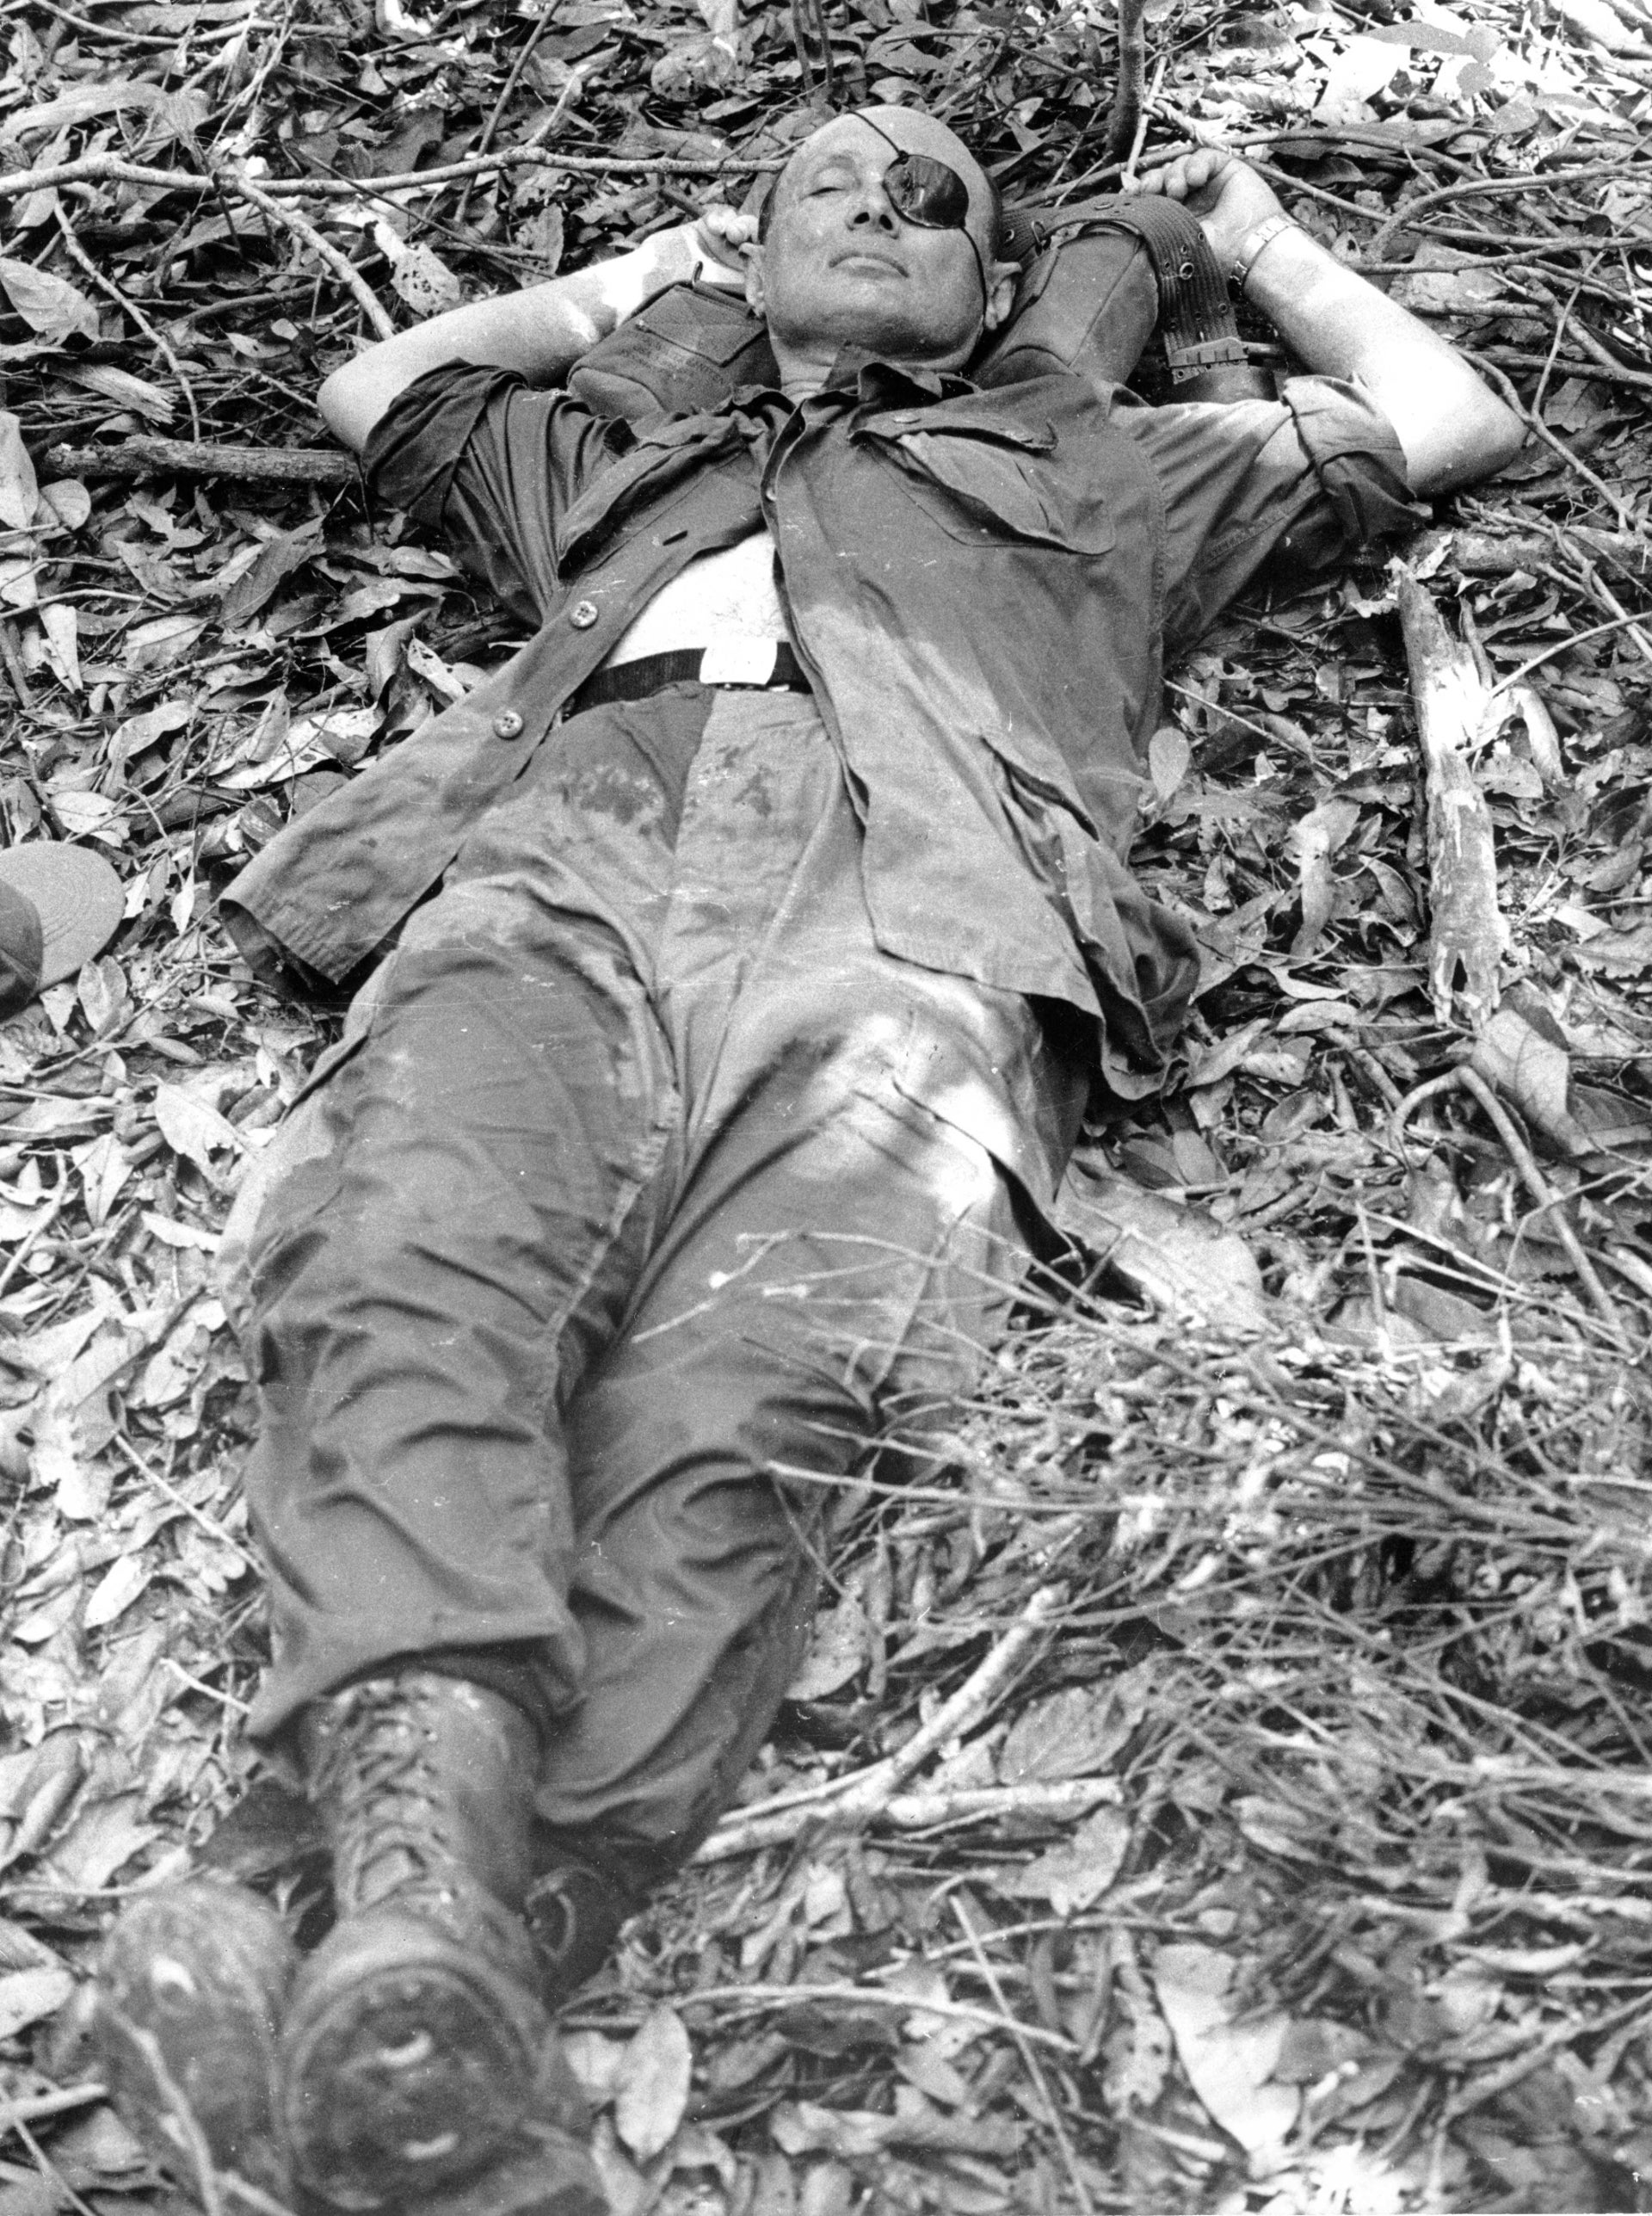 Moshe Dayan in the jungles of Vietnam, August 1966.